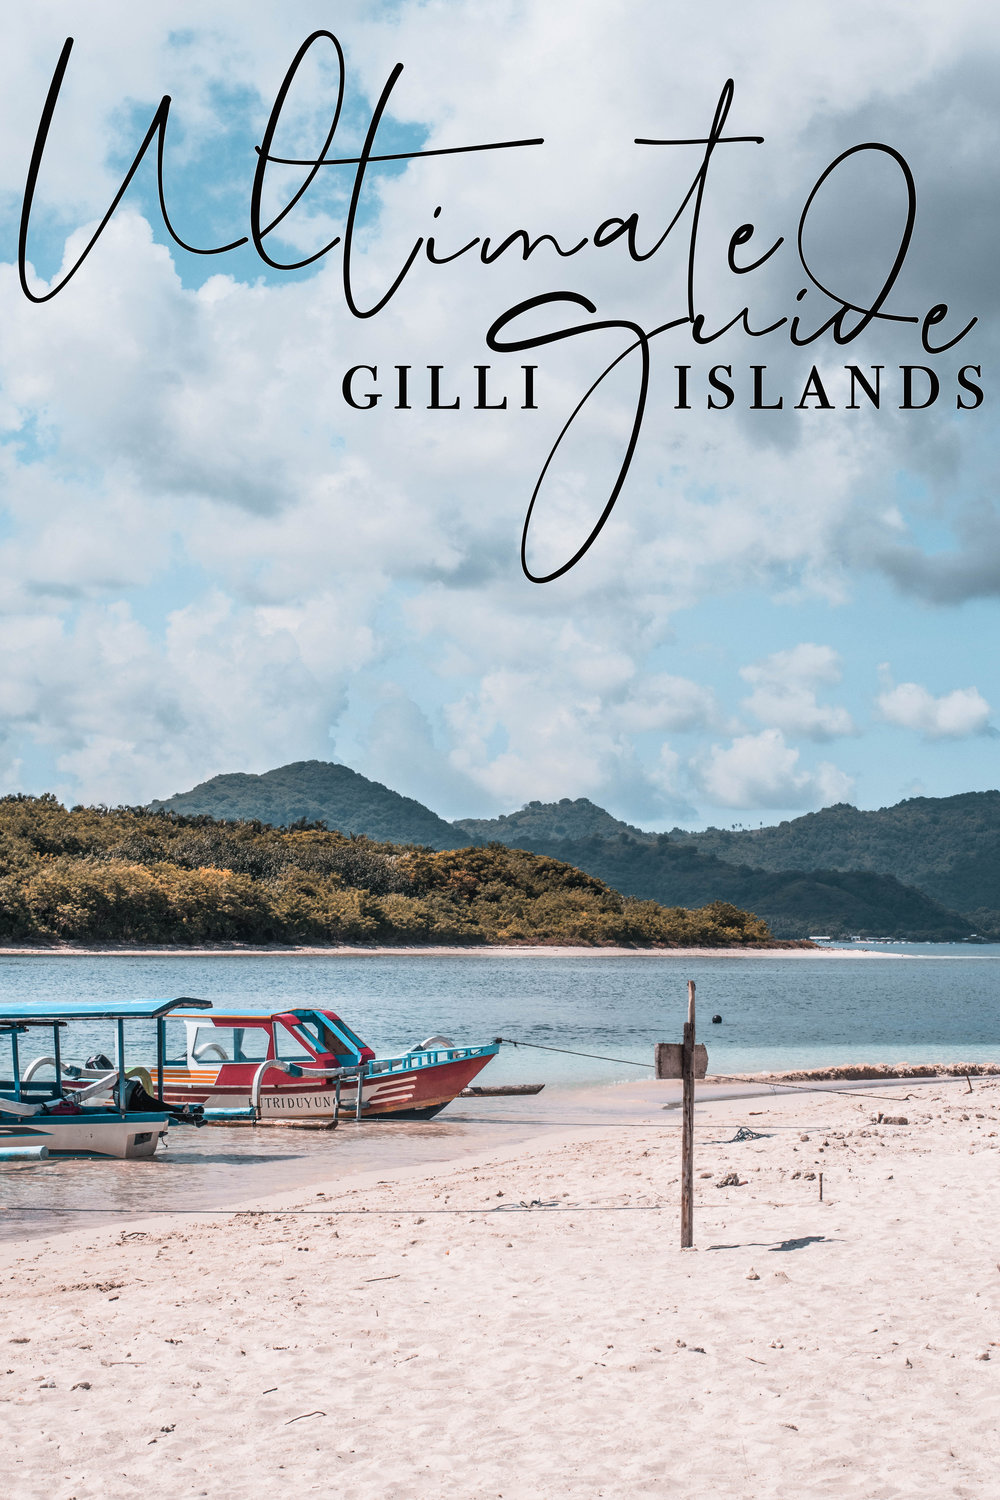 Gilli Islands Guide. Things to do in Lombok. Manchester, UK beauty and lifestyle blog. Uk travel blog. UK Beauty Blog. Manchester Beauty blog. UK Lifestyle blog. Manchester lifestyle blog. UK Fashion Blog. Manchester Fashion Blog. Ellie Dickinson. Ellie Grace. Ellie Grace Dickinson.